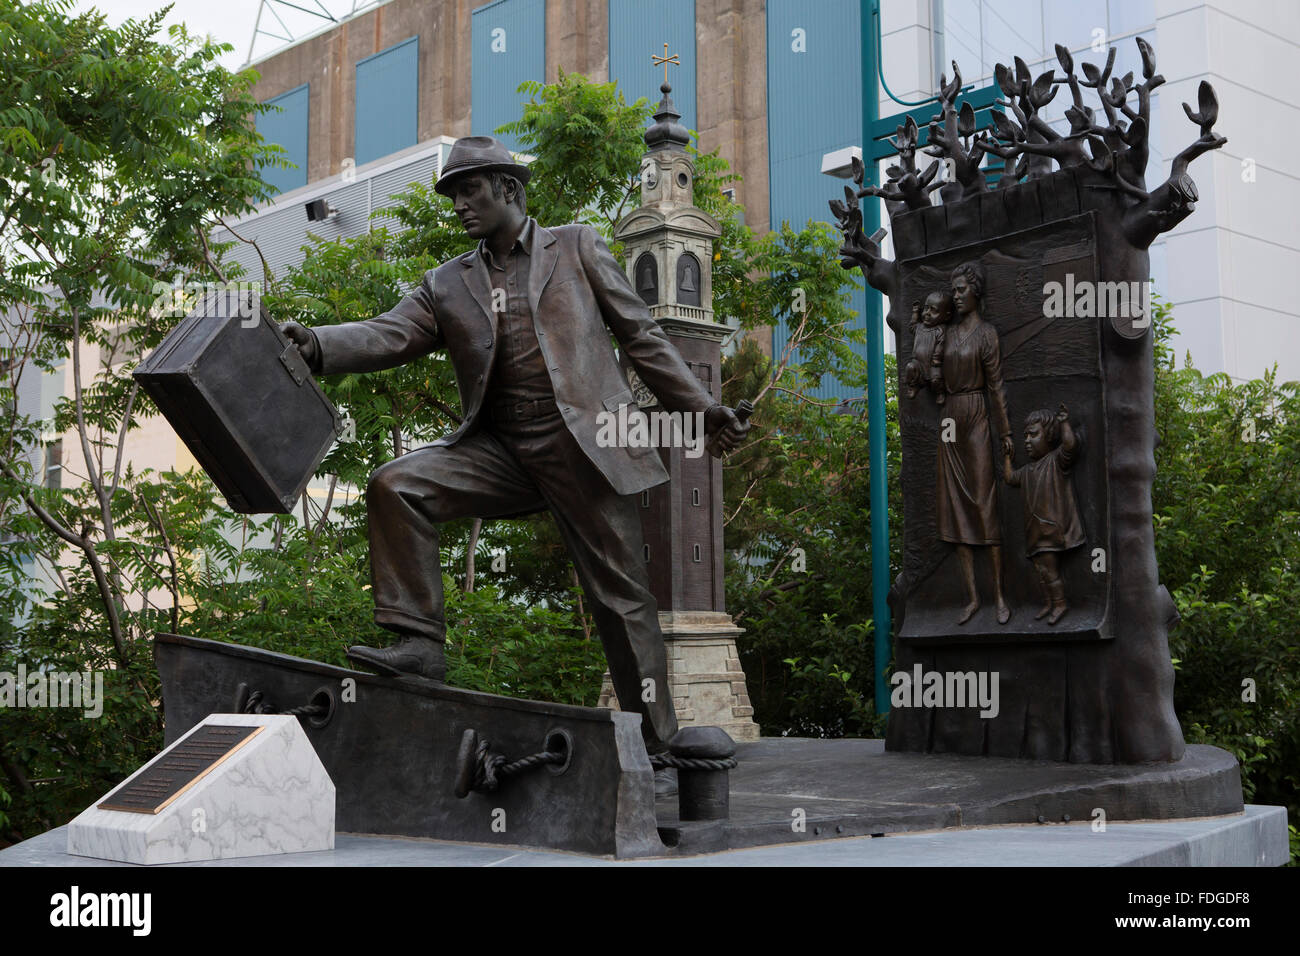 The statue 'The Emigrant' by Armando Barbon in Halifax, Canada. - Stock Image